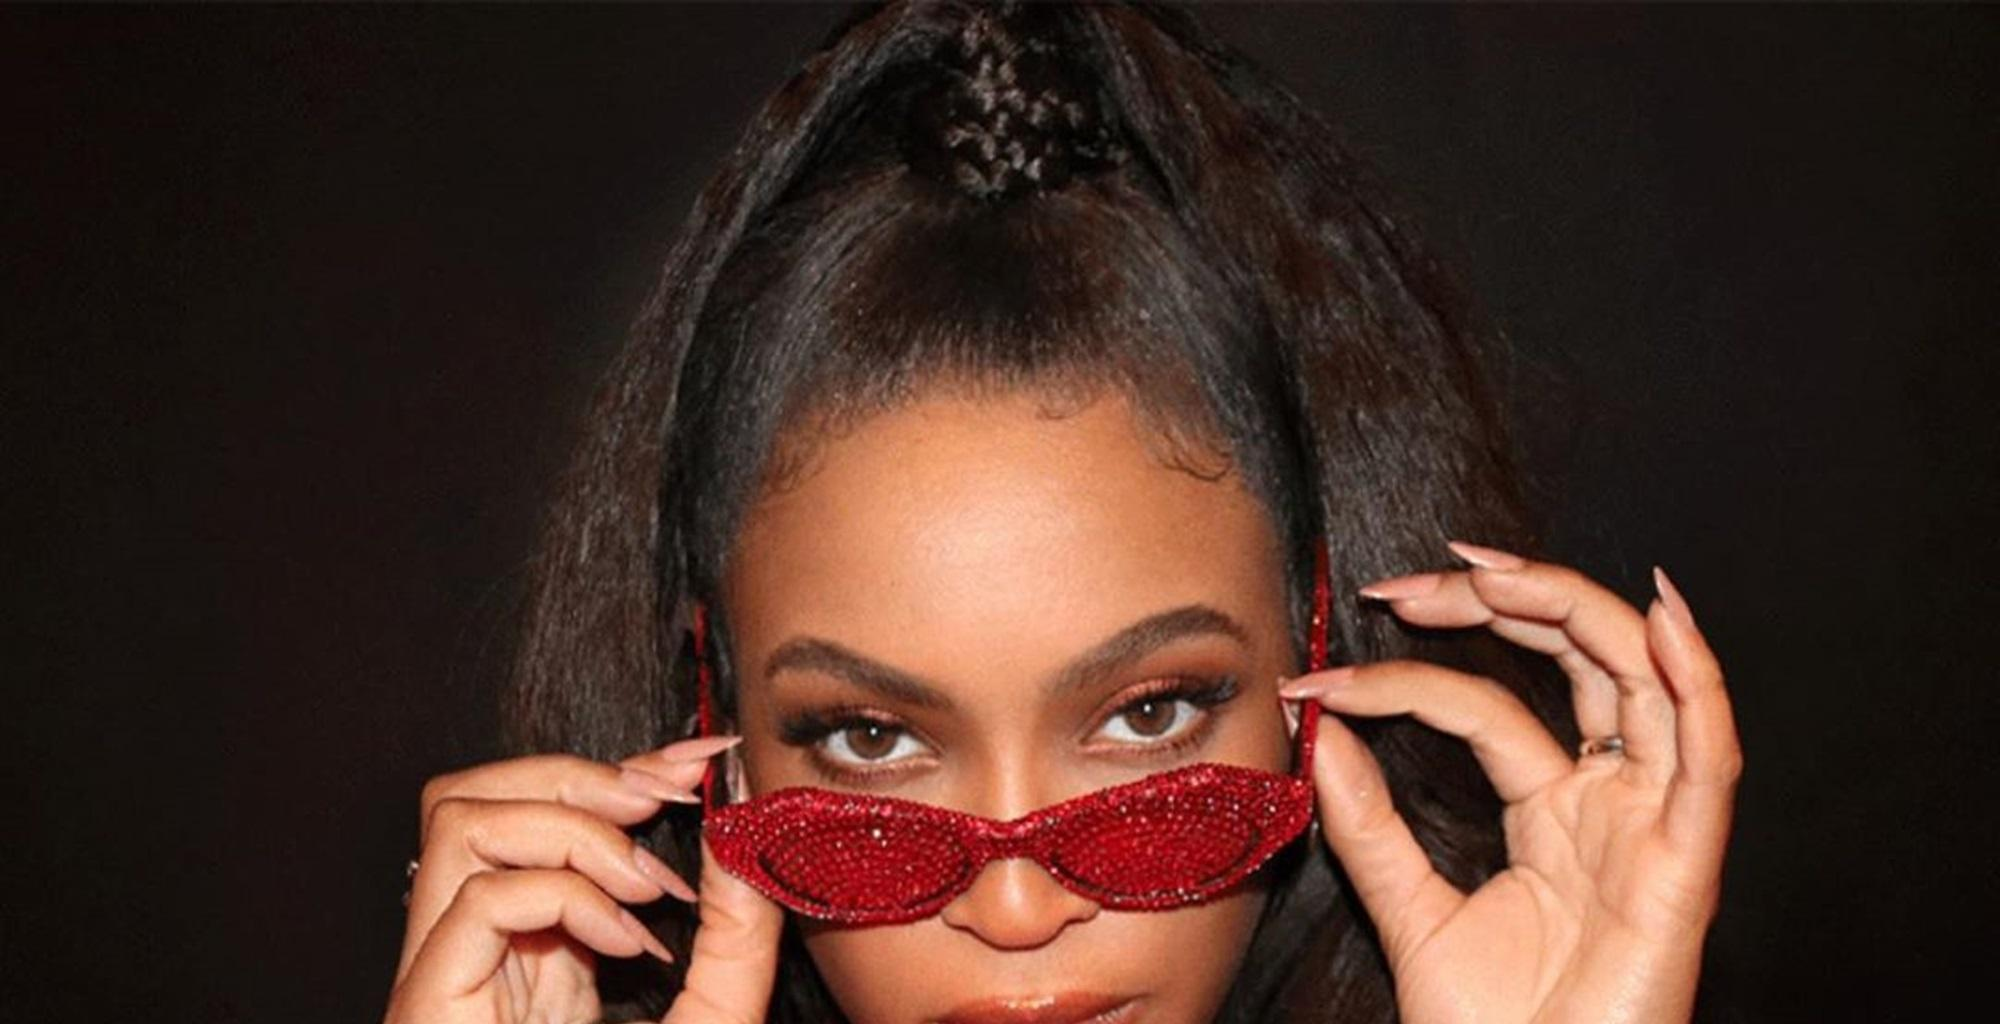 Beyonce Shuts The Internet Down In Tight Red Dress -- New Photos Spark Another Debate On Who Is Really 'The Most Beautiful Woman In The World'